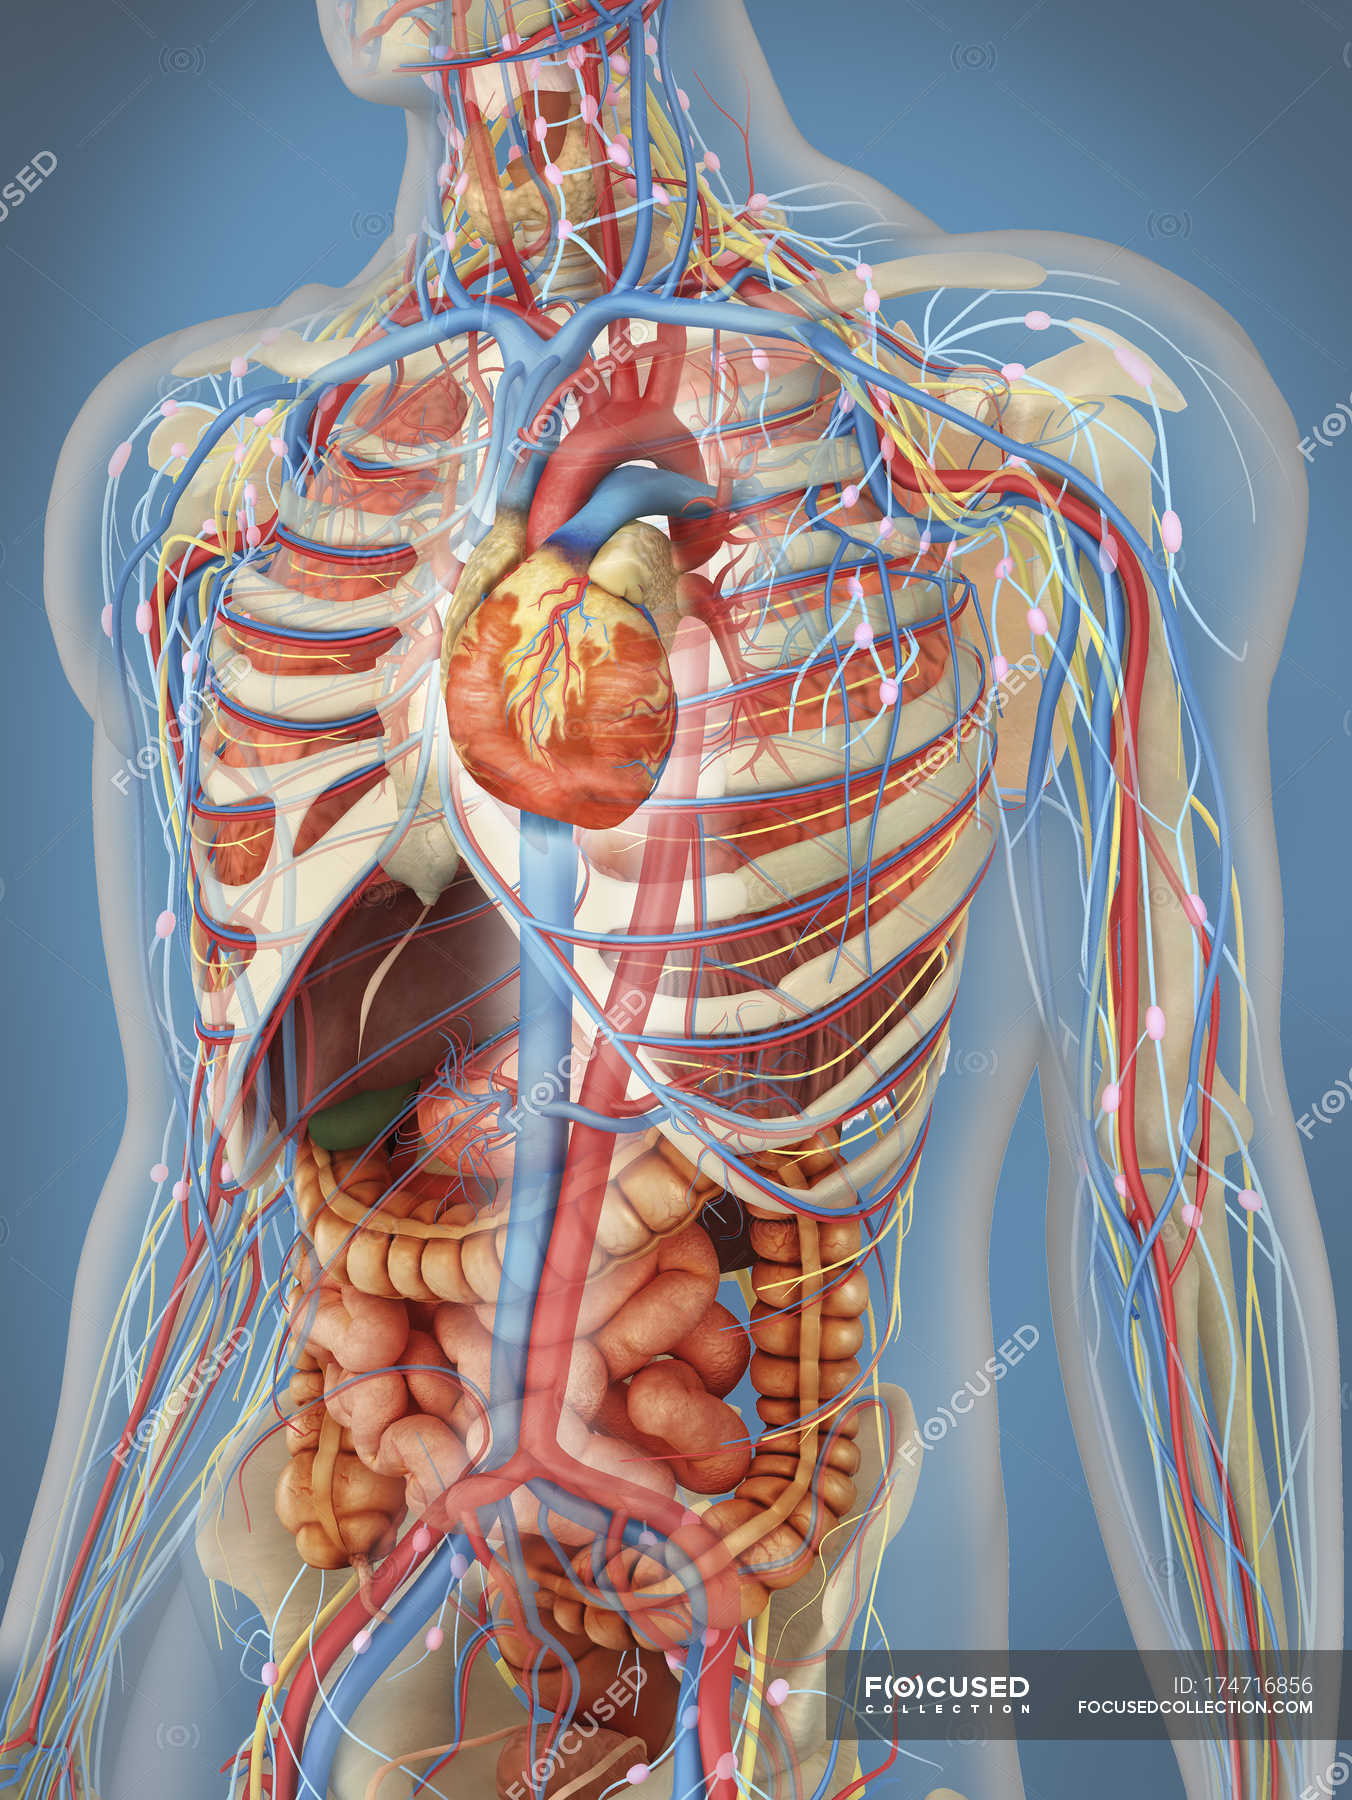 Transparent Human Body Showing Heart And Main Circulatory System